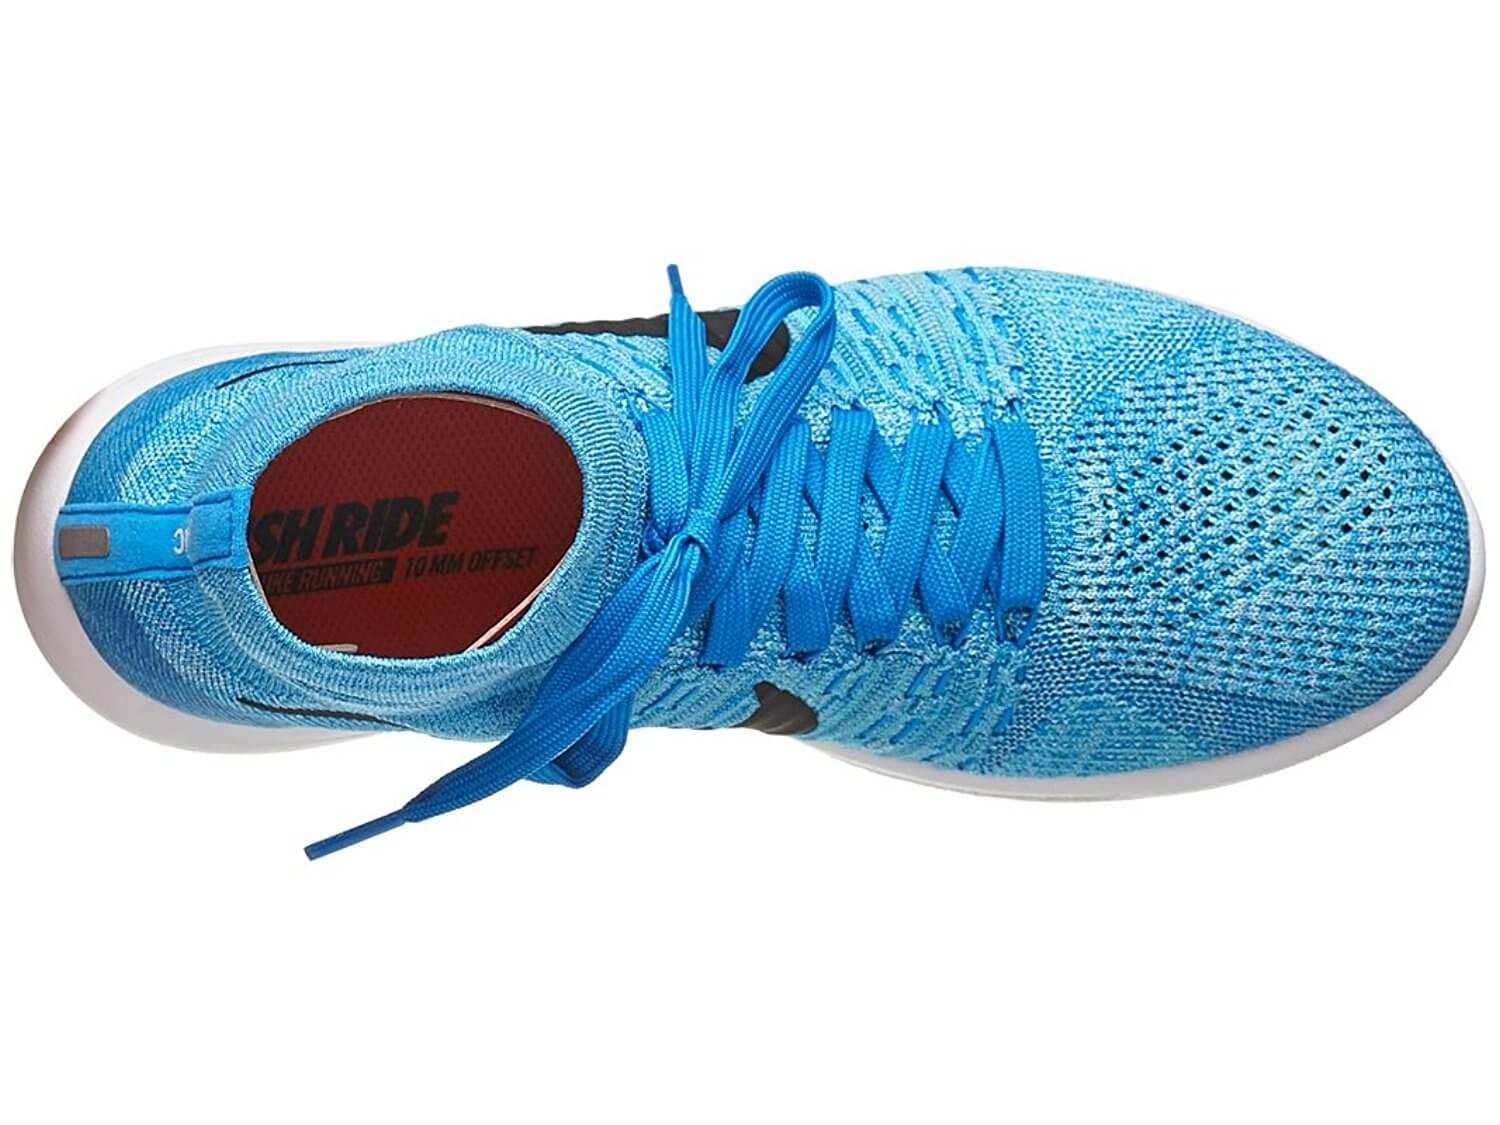 The upper portion of the Nike LunarEpic Flyknit can be ordered with a low cut or mid cut.